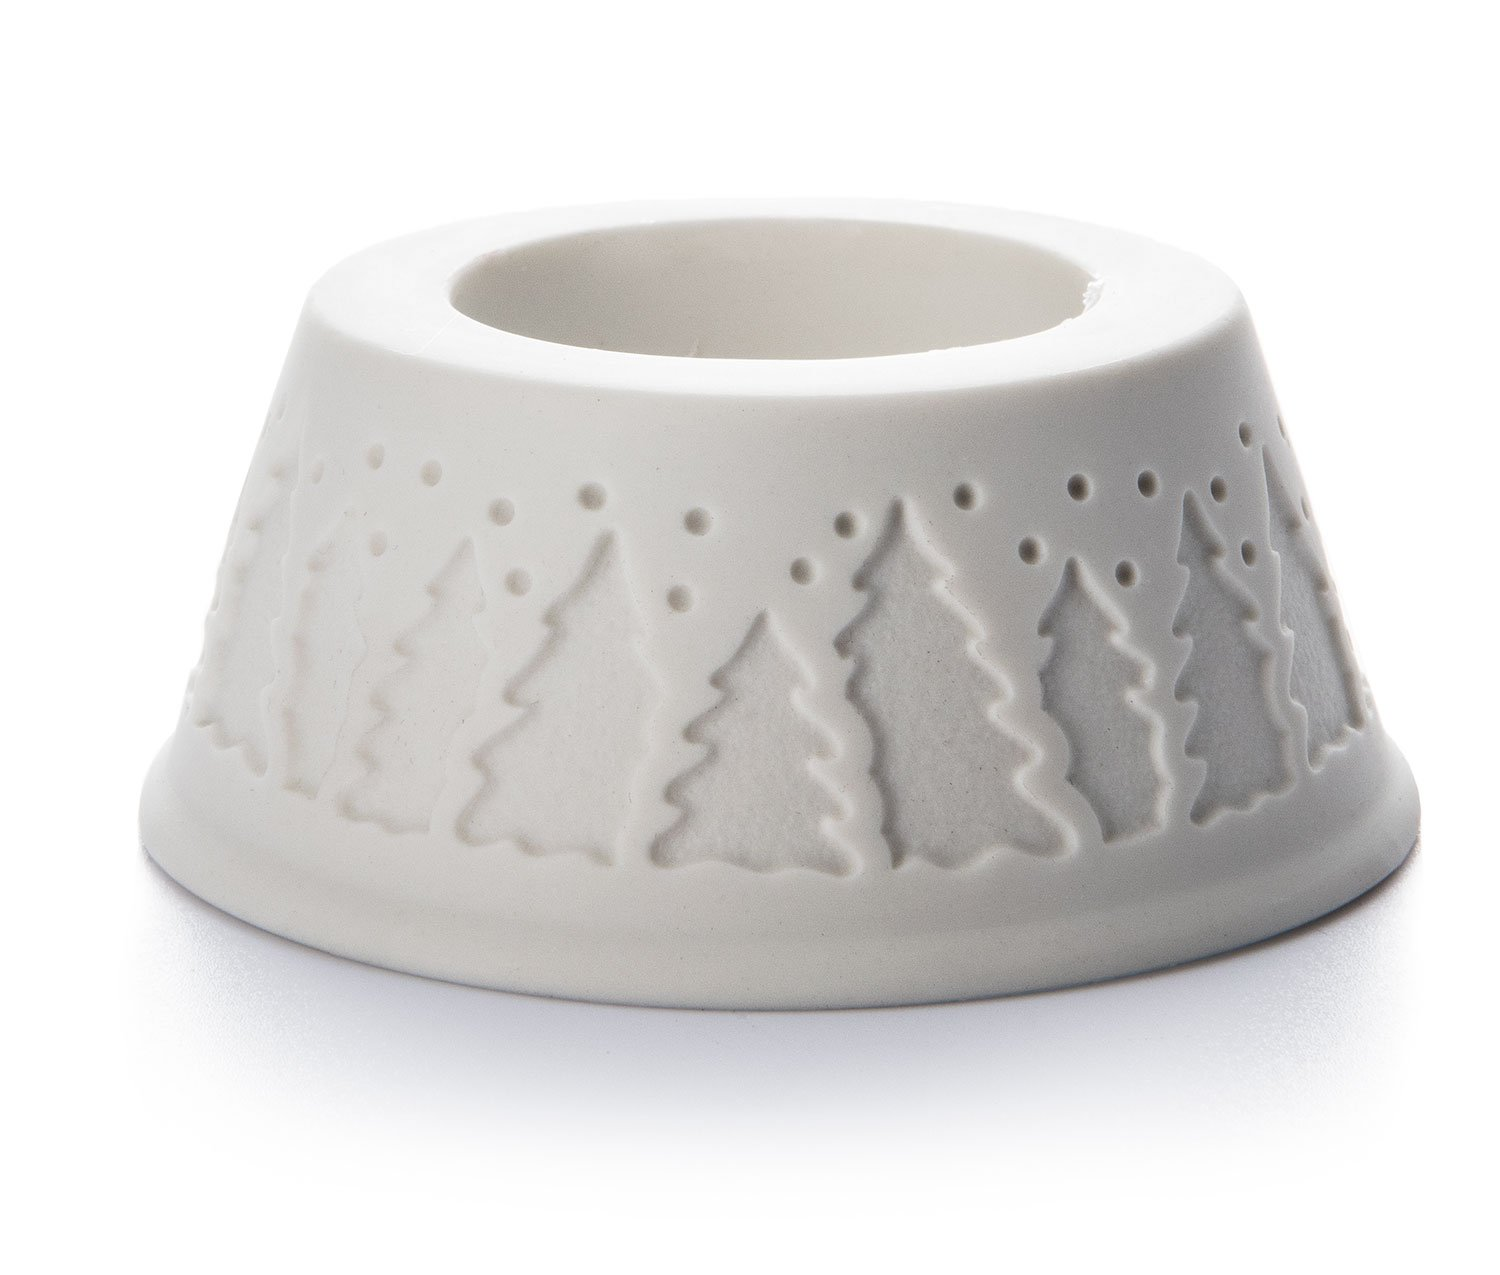 Advent Candle White Porcelain Holder - Trees, suitable for any 5cm diameter pillar candle Maingate